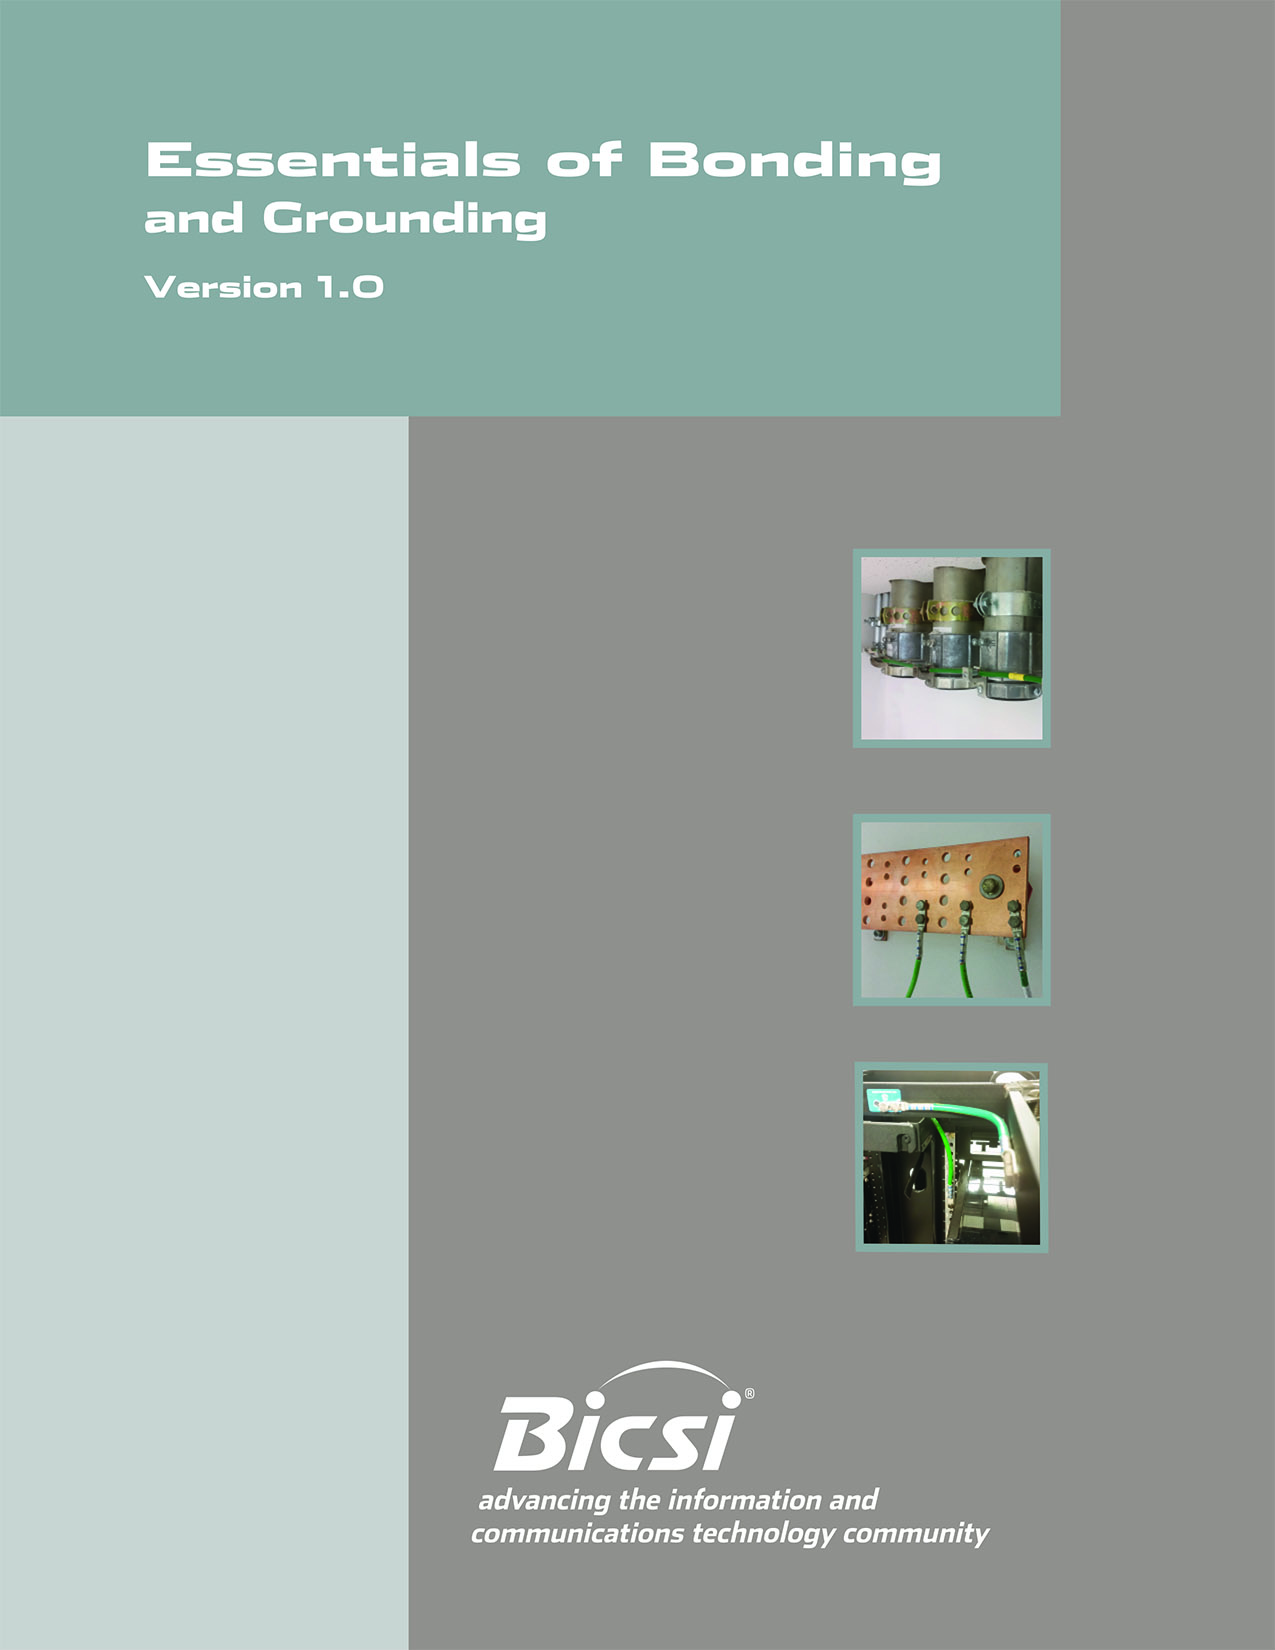 Essentials of Bonding and Grounding, Version 1.0